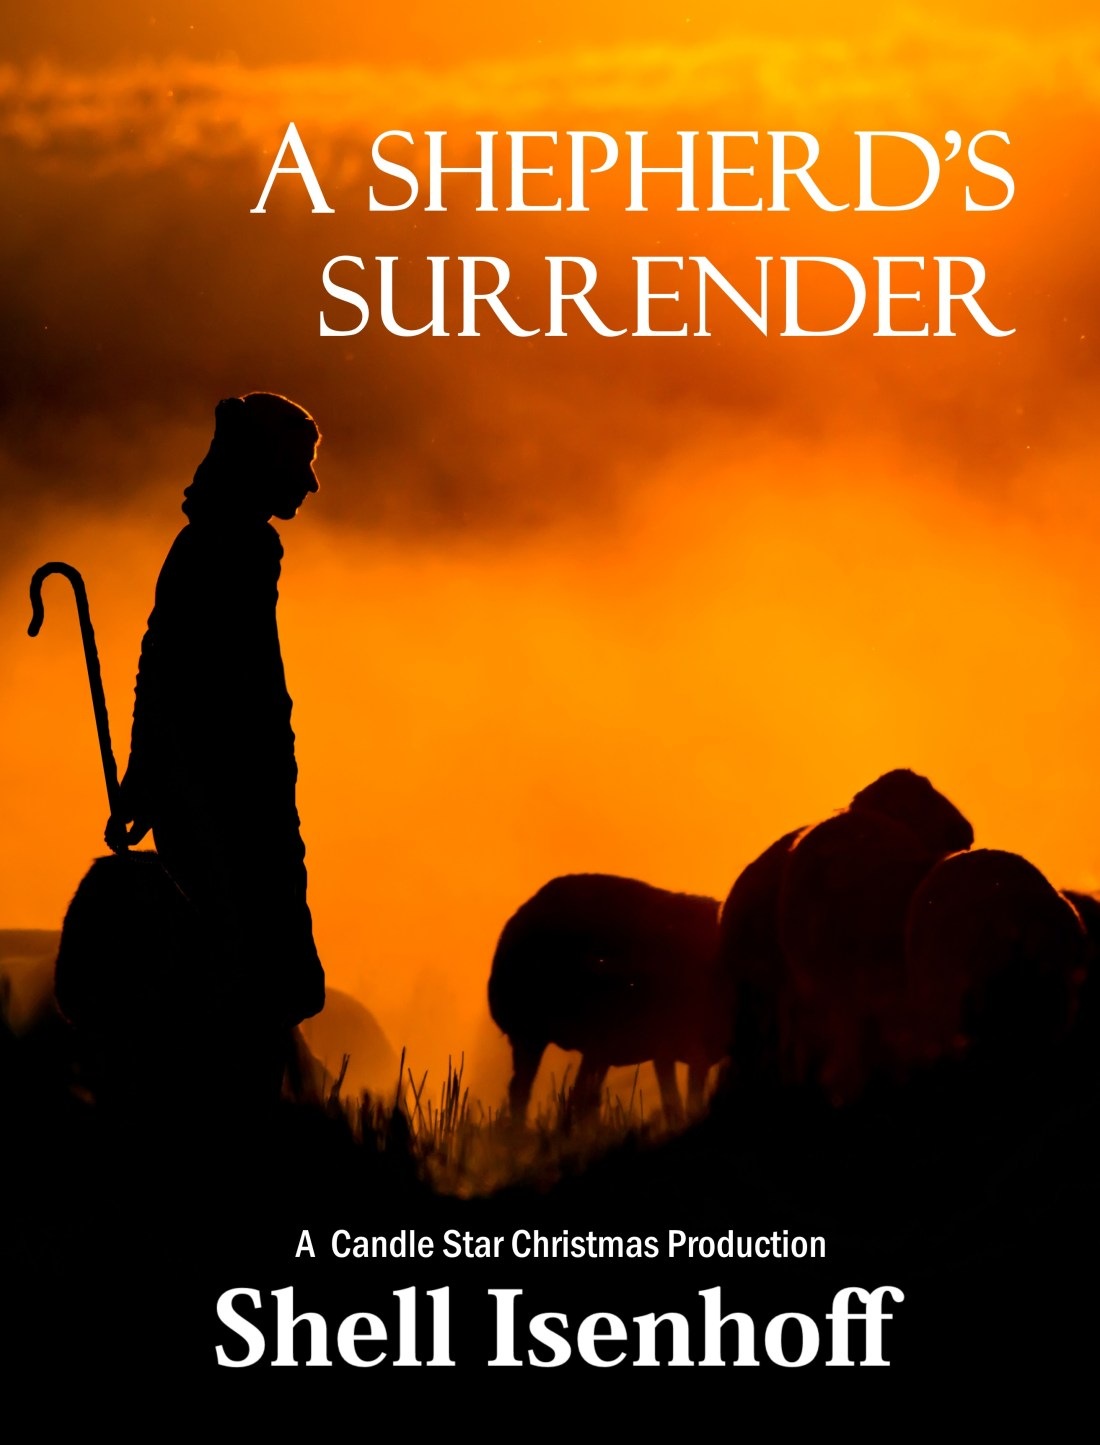 Shepherd's Surrender